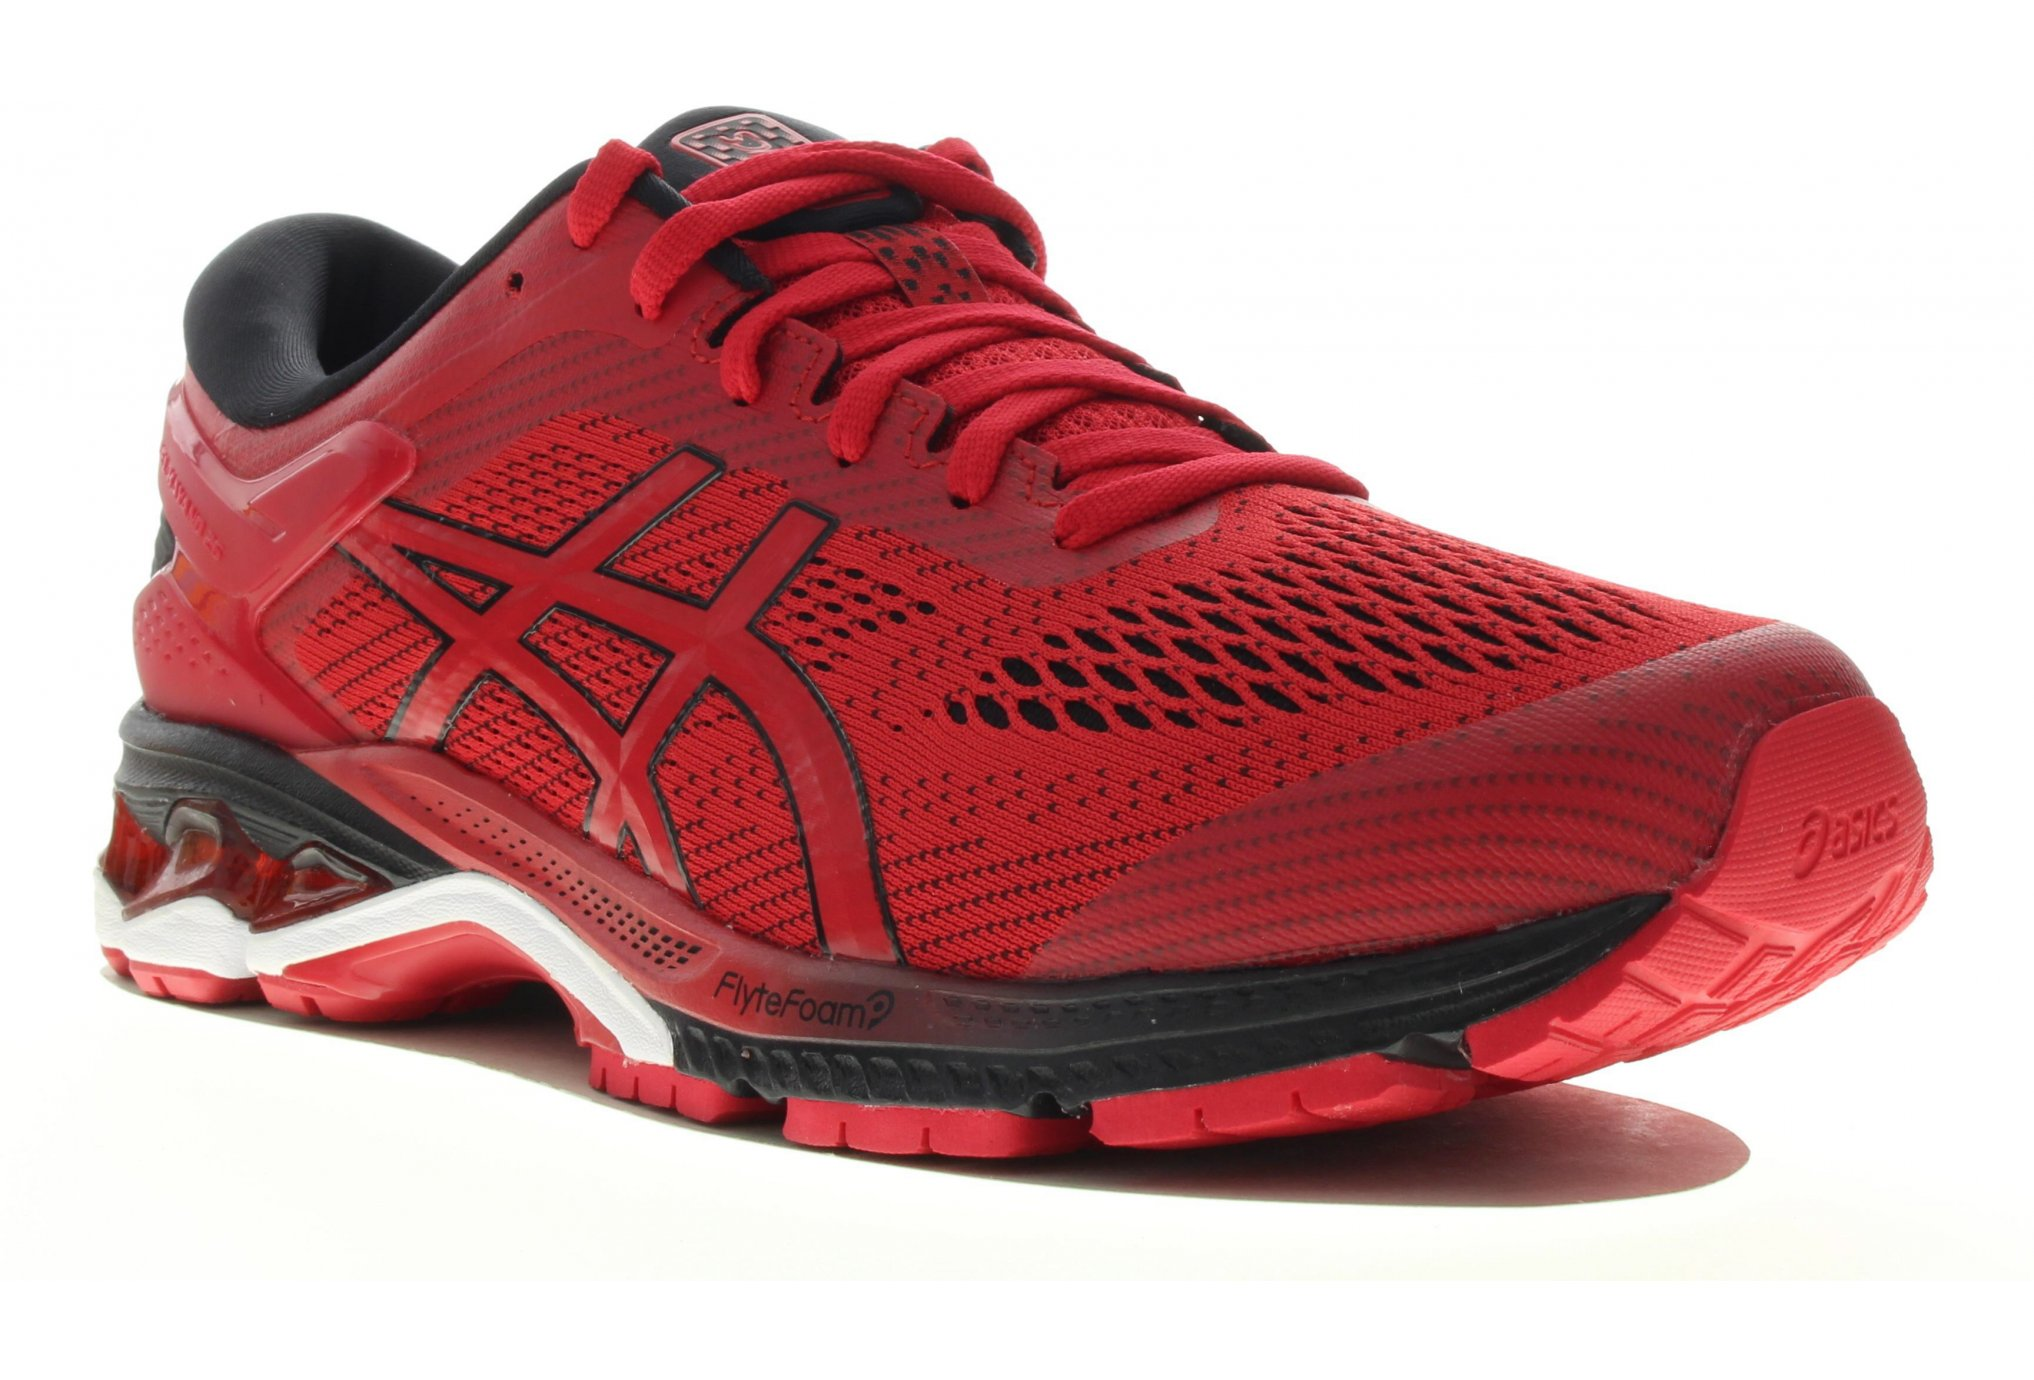 Asics Gel Kayano 26 Chaussures homme